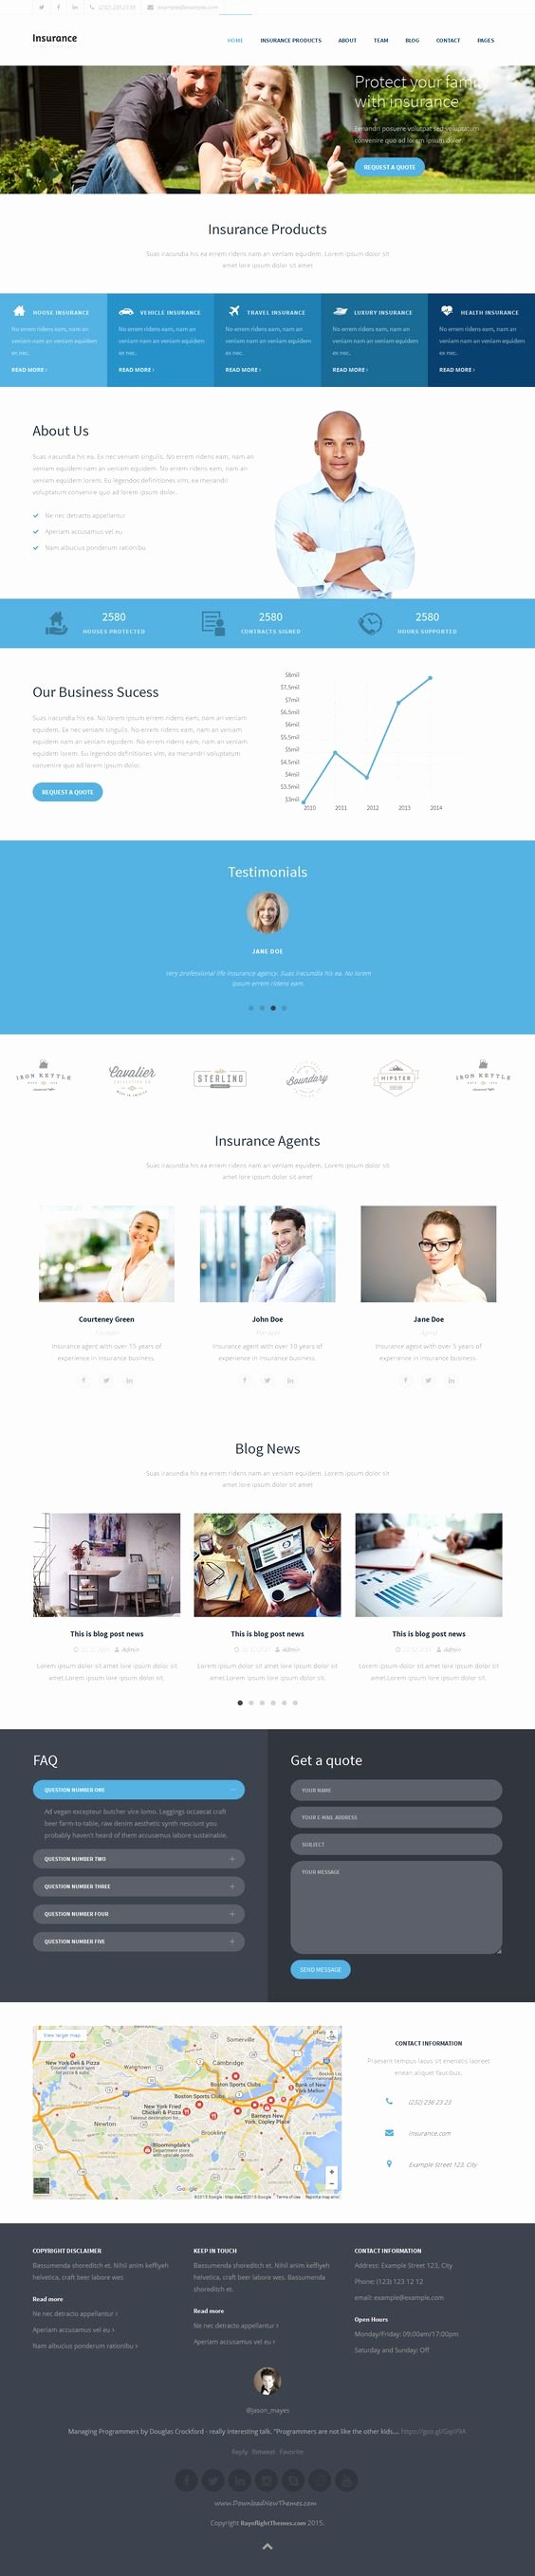 Insurance Agency HTML5 Website Template